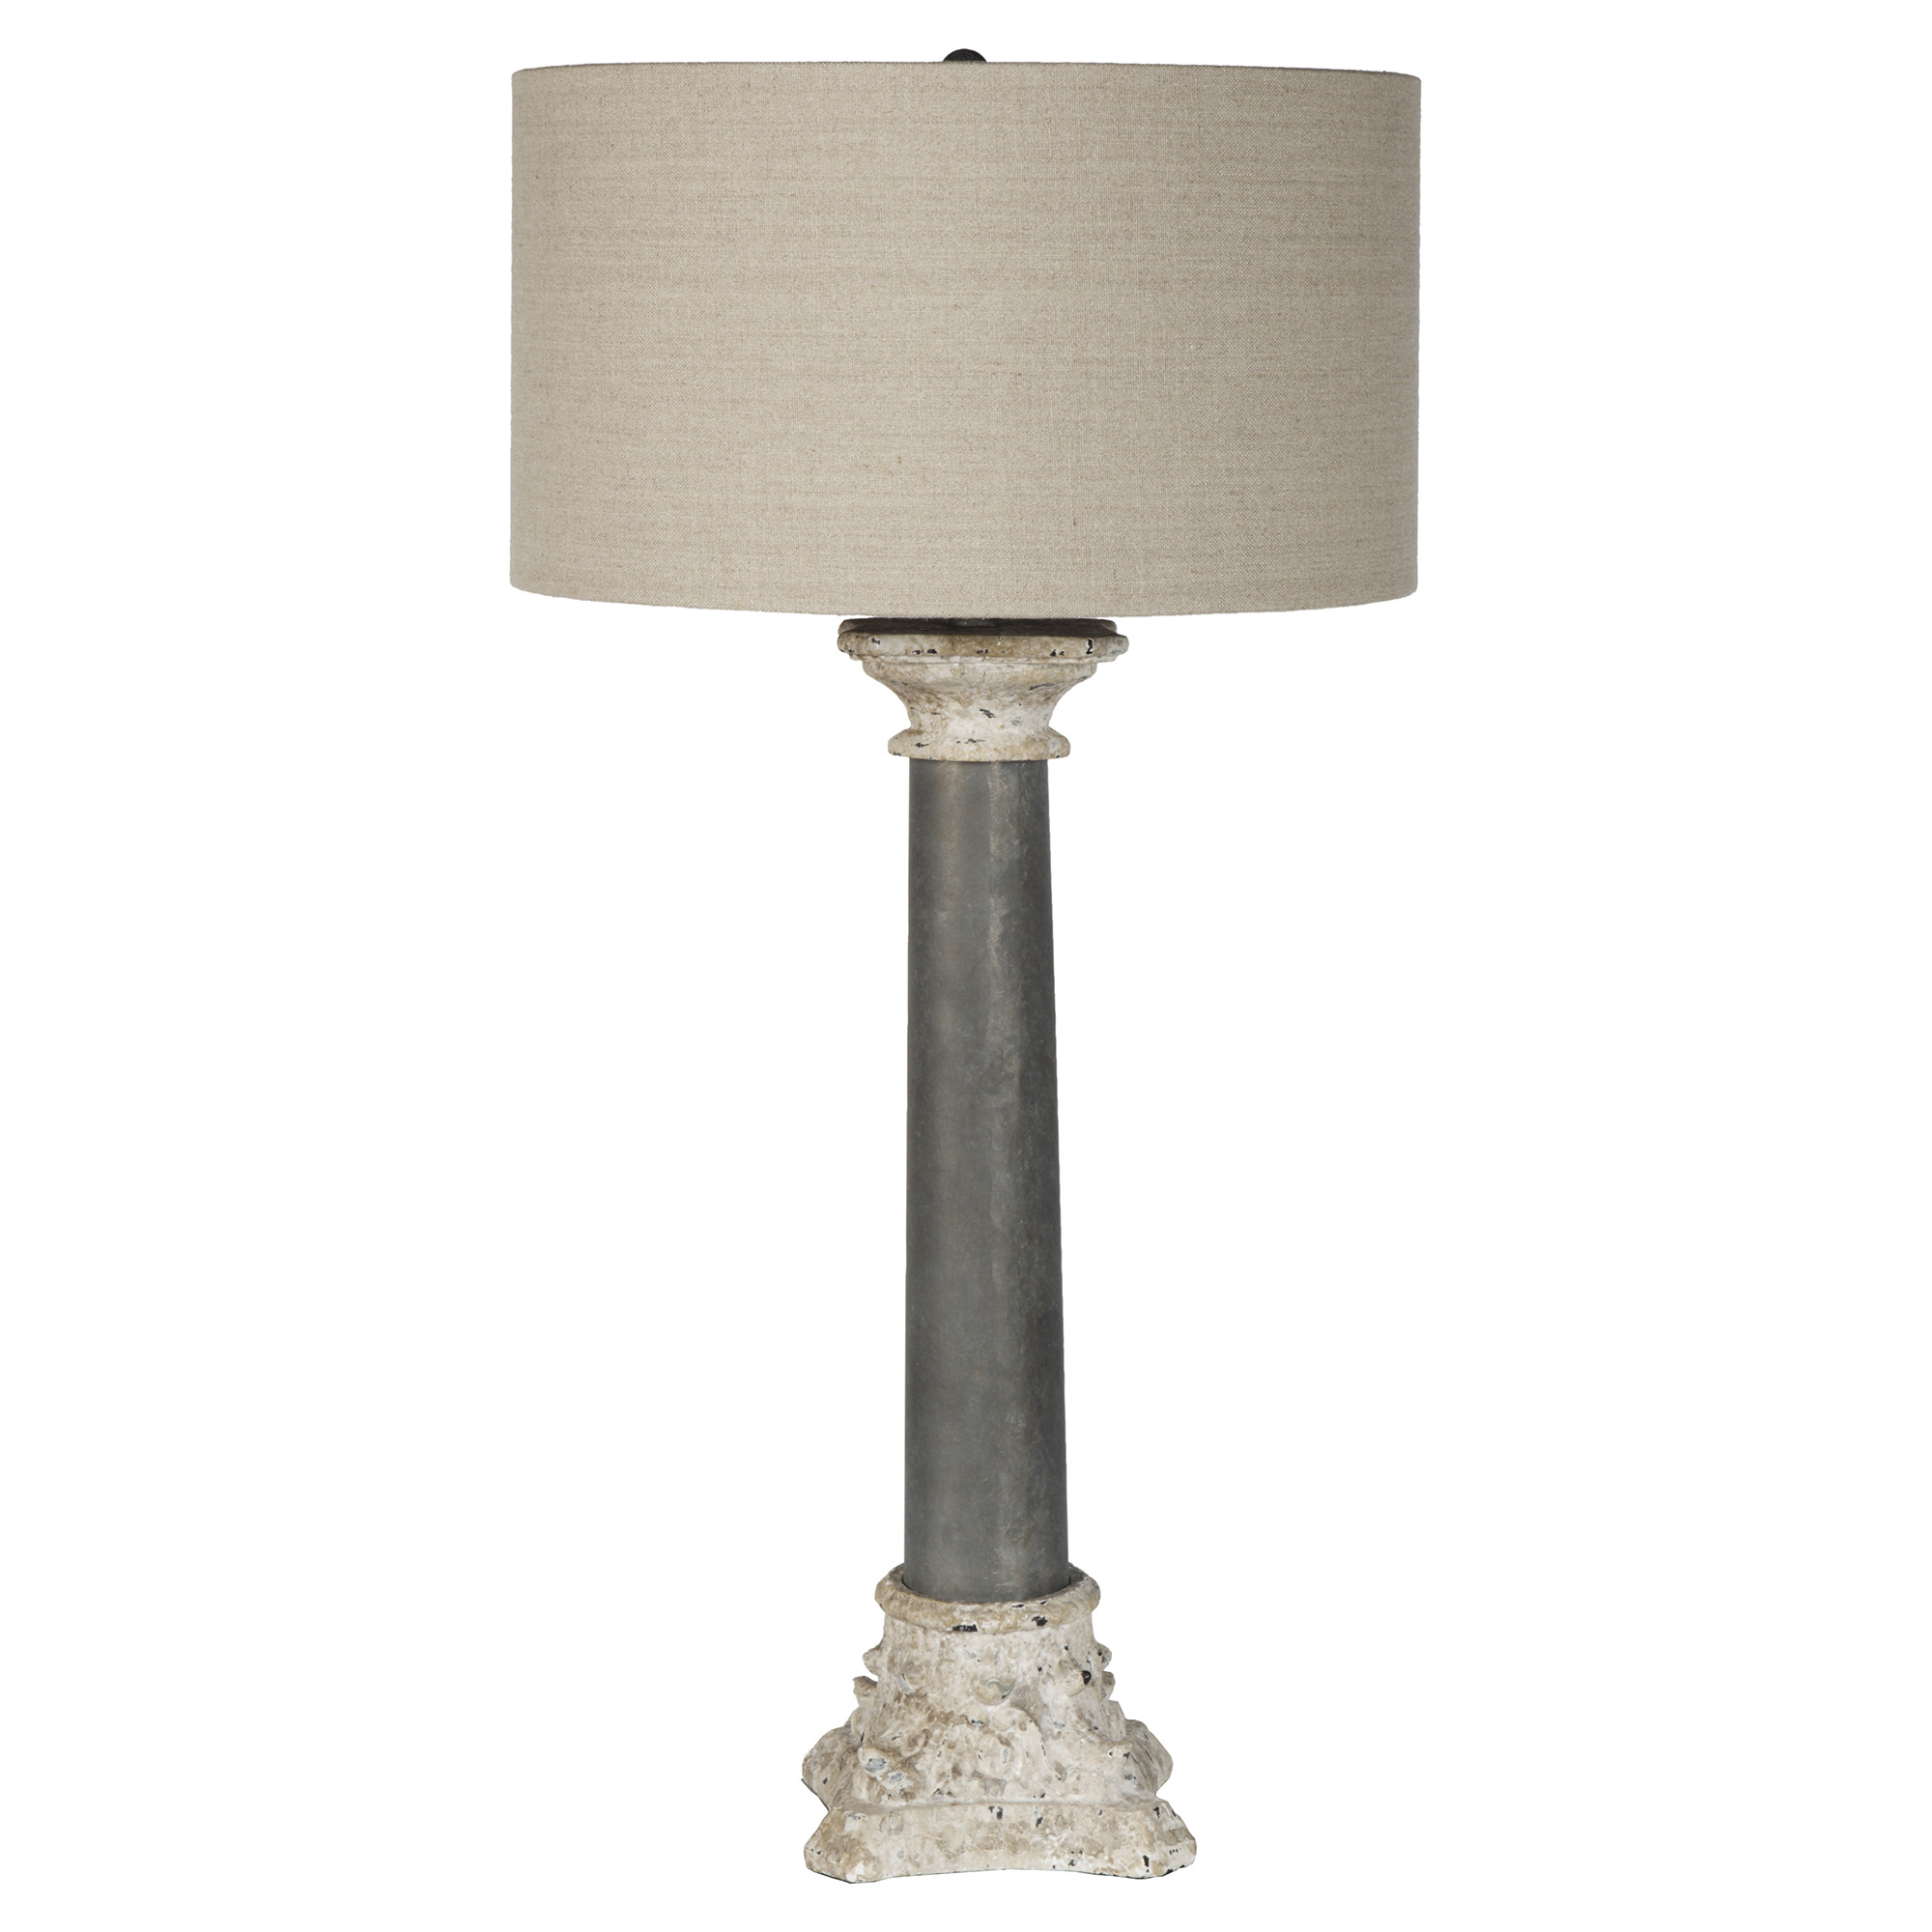 Zincourt French Country Rustic Architect Column Table Lamp